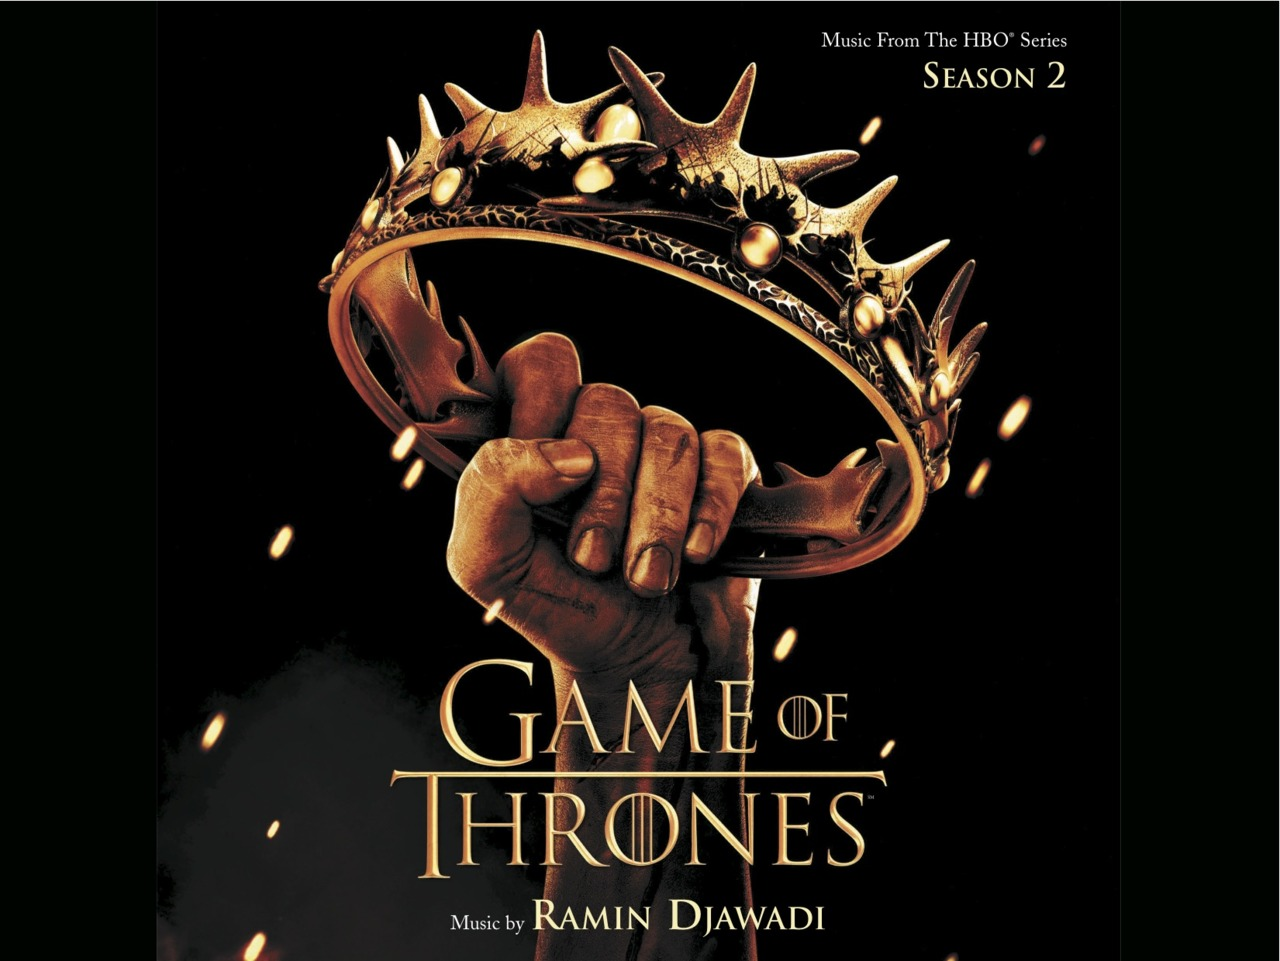 game-of-thrones-83b8bc